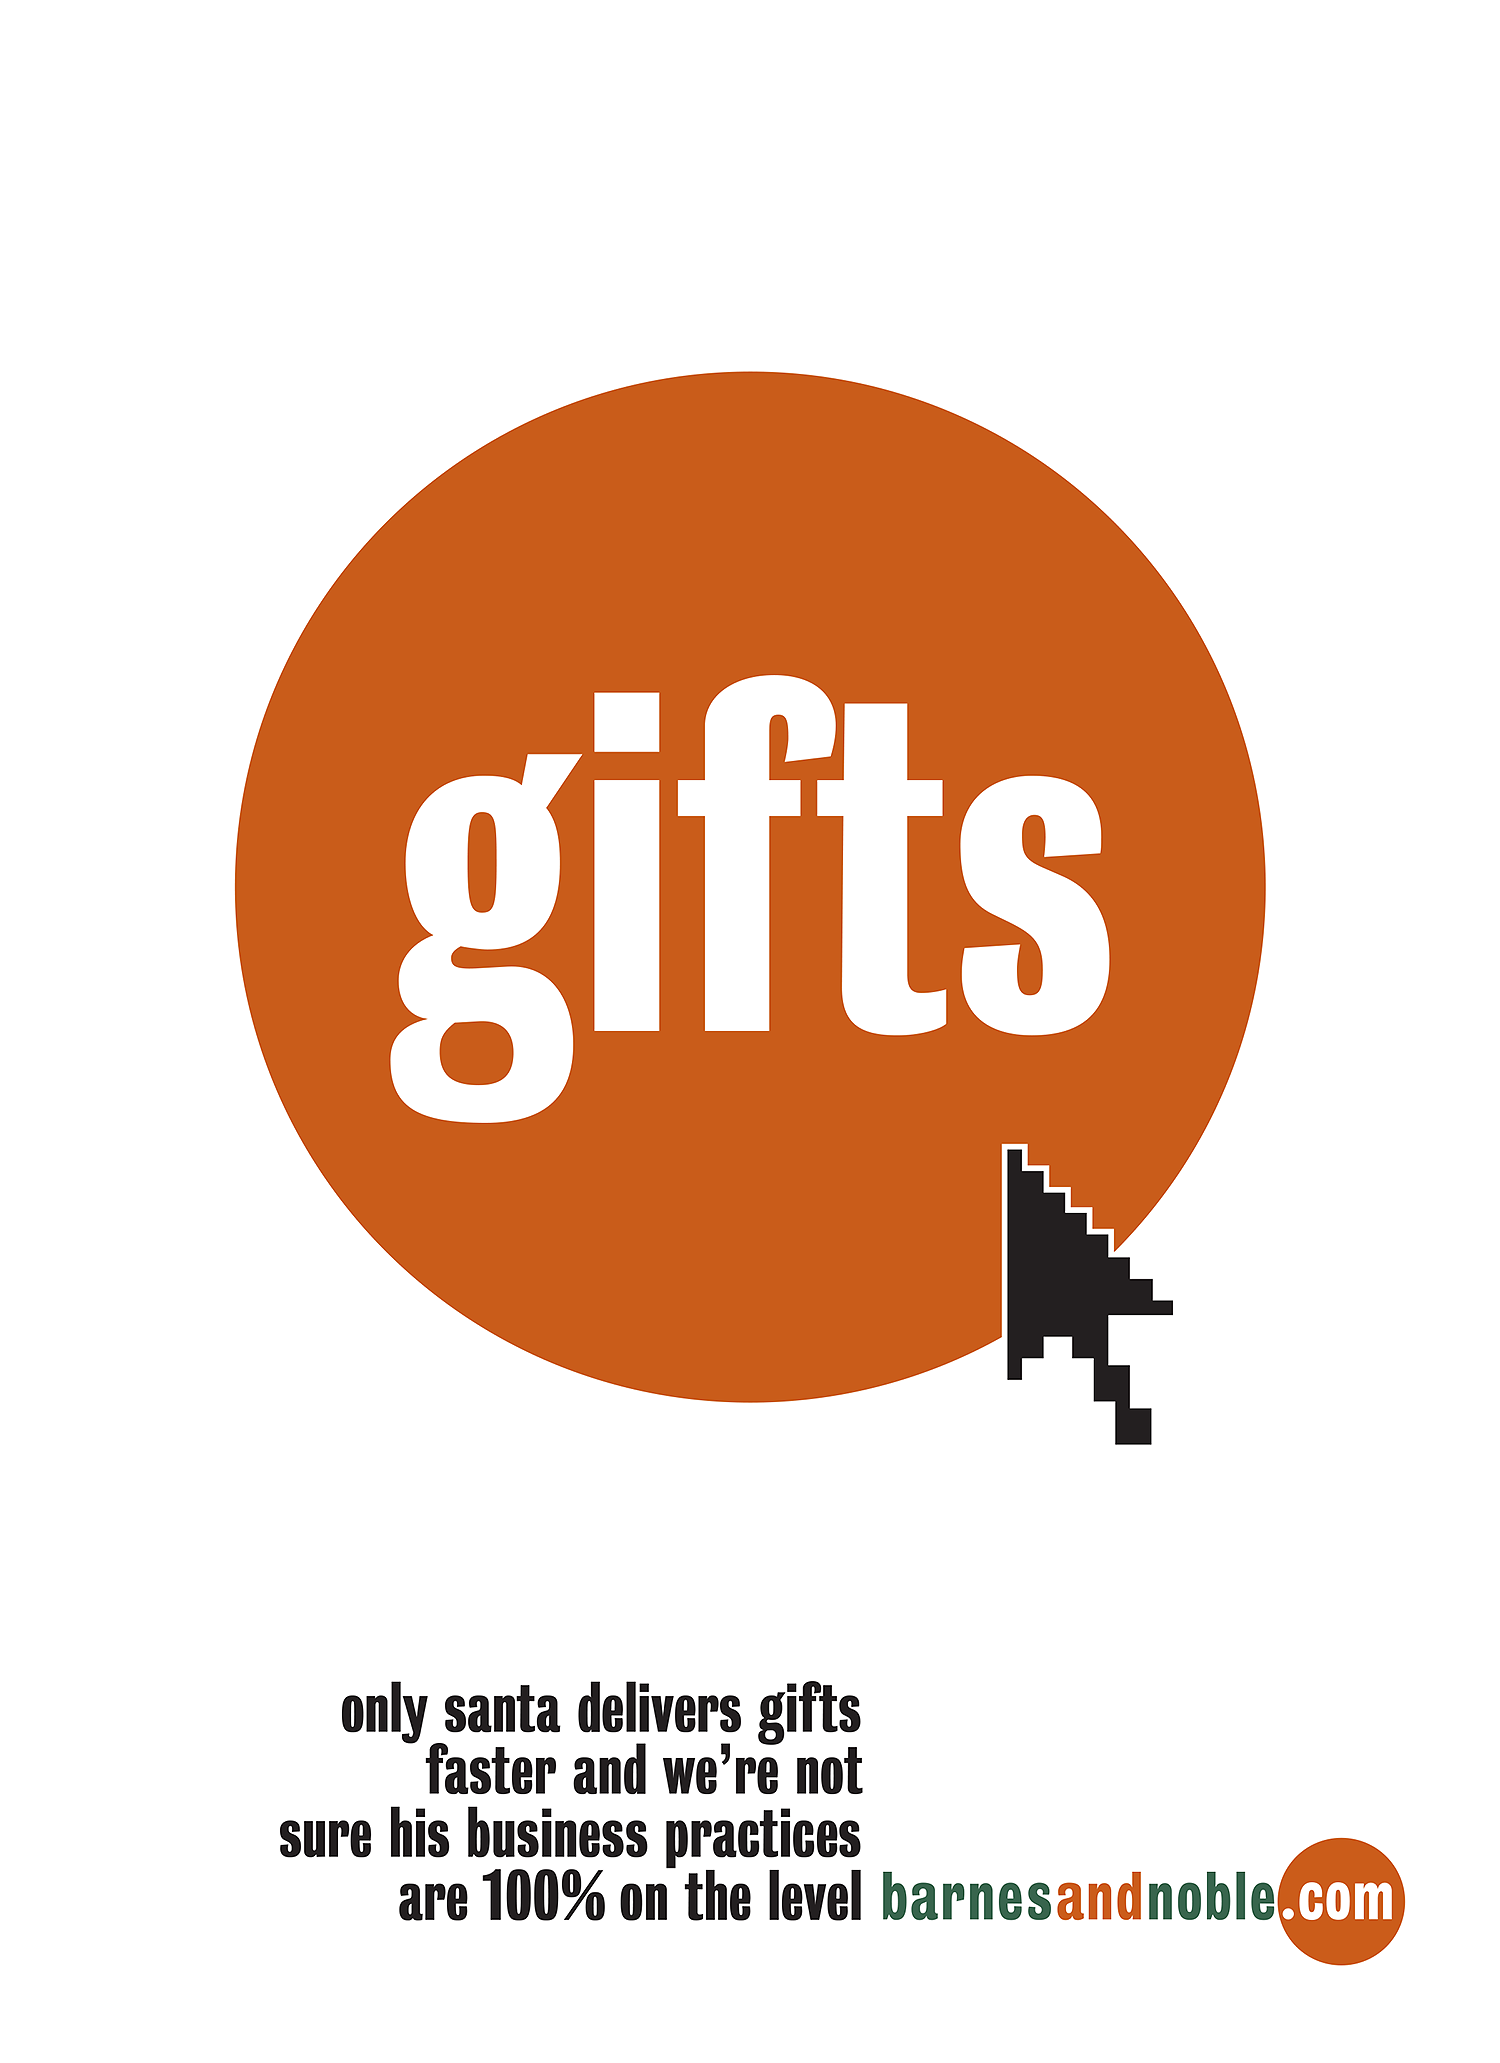 b&n gifts santa#01 copy.png